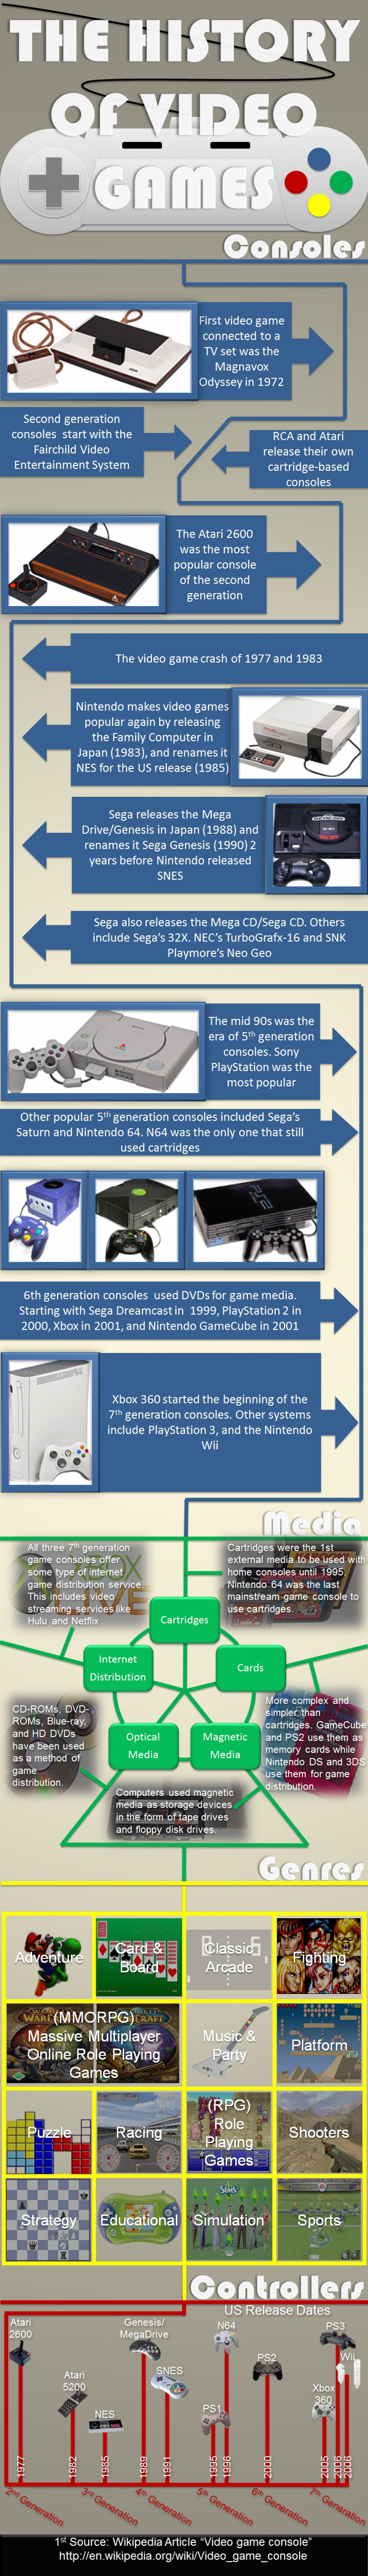 The History of Video Games History of video games, Video